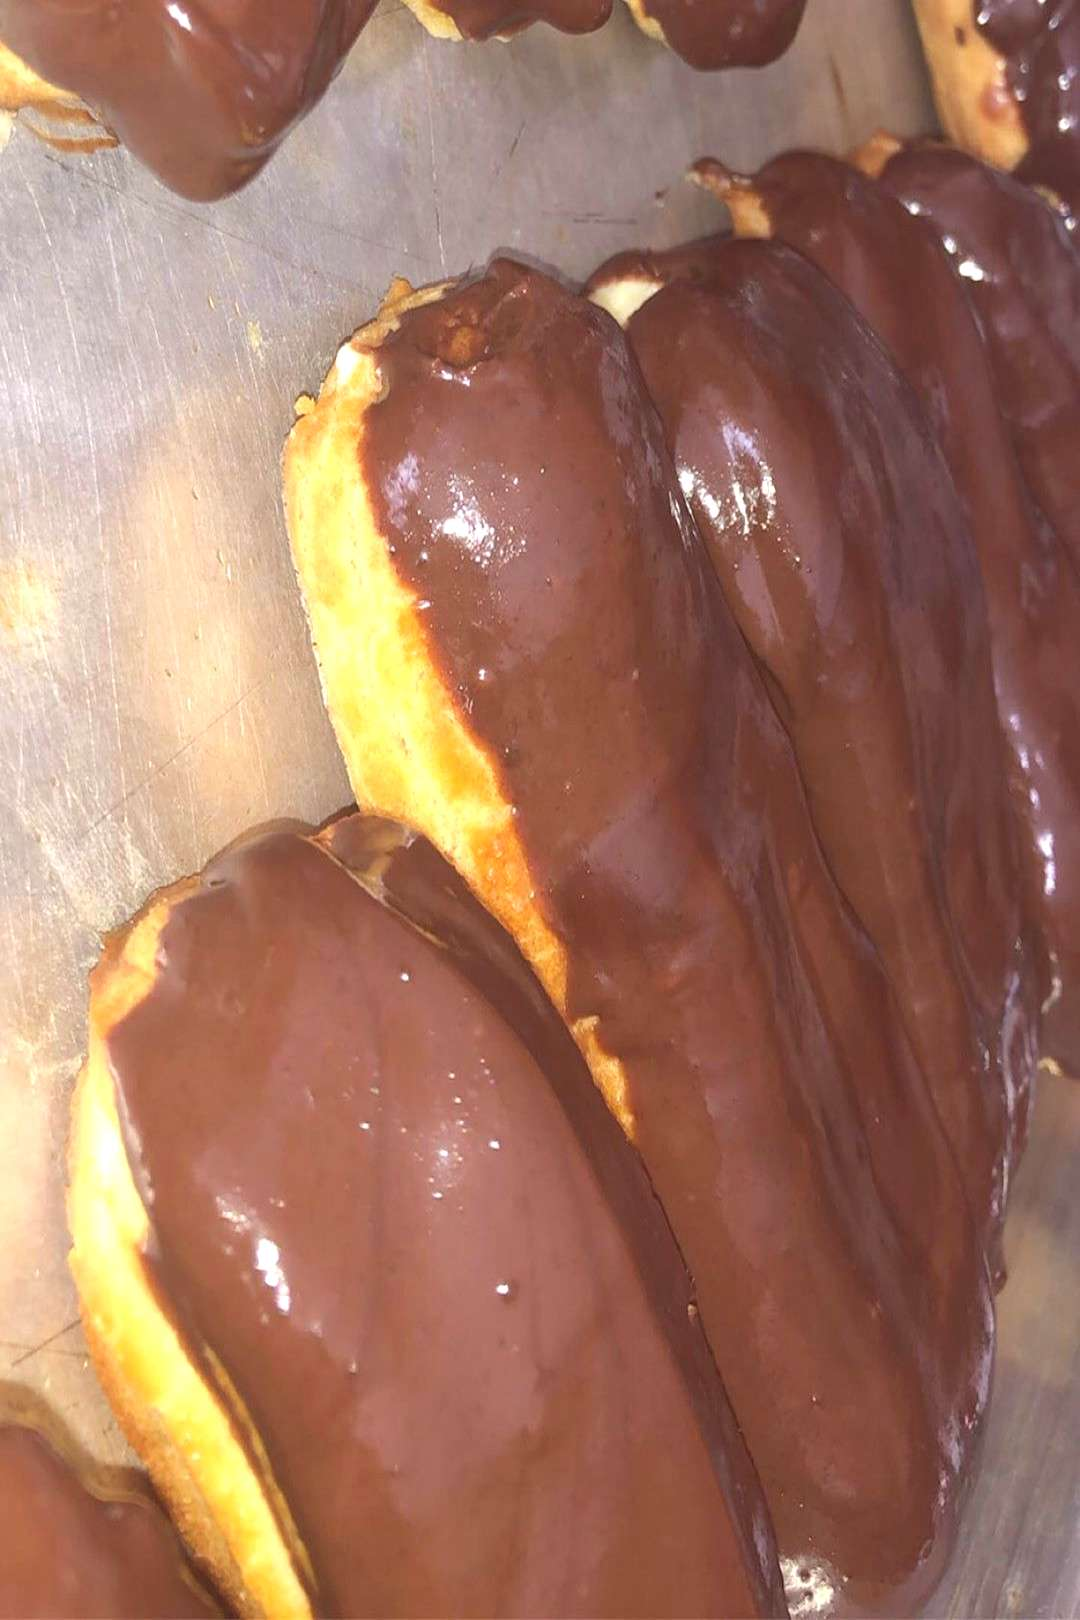 Freshly baked eclairs filled with yummy vanilla custard and long